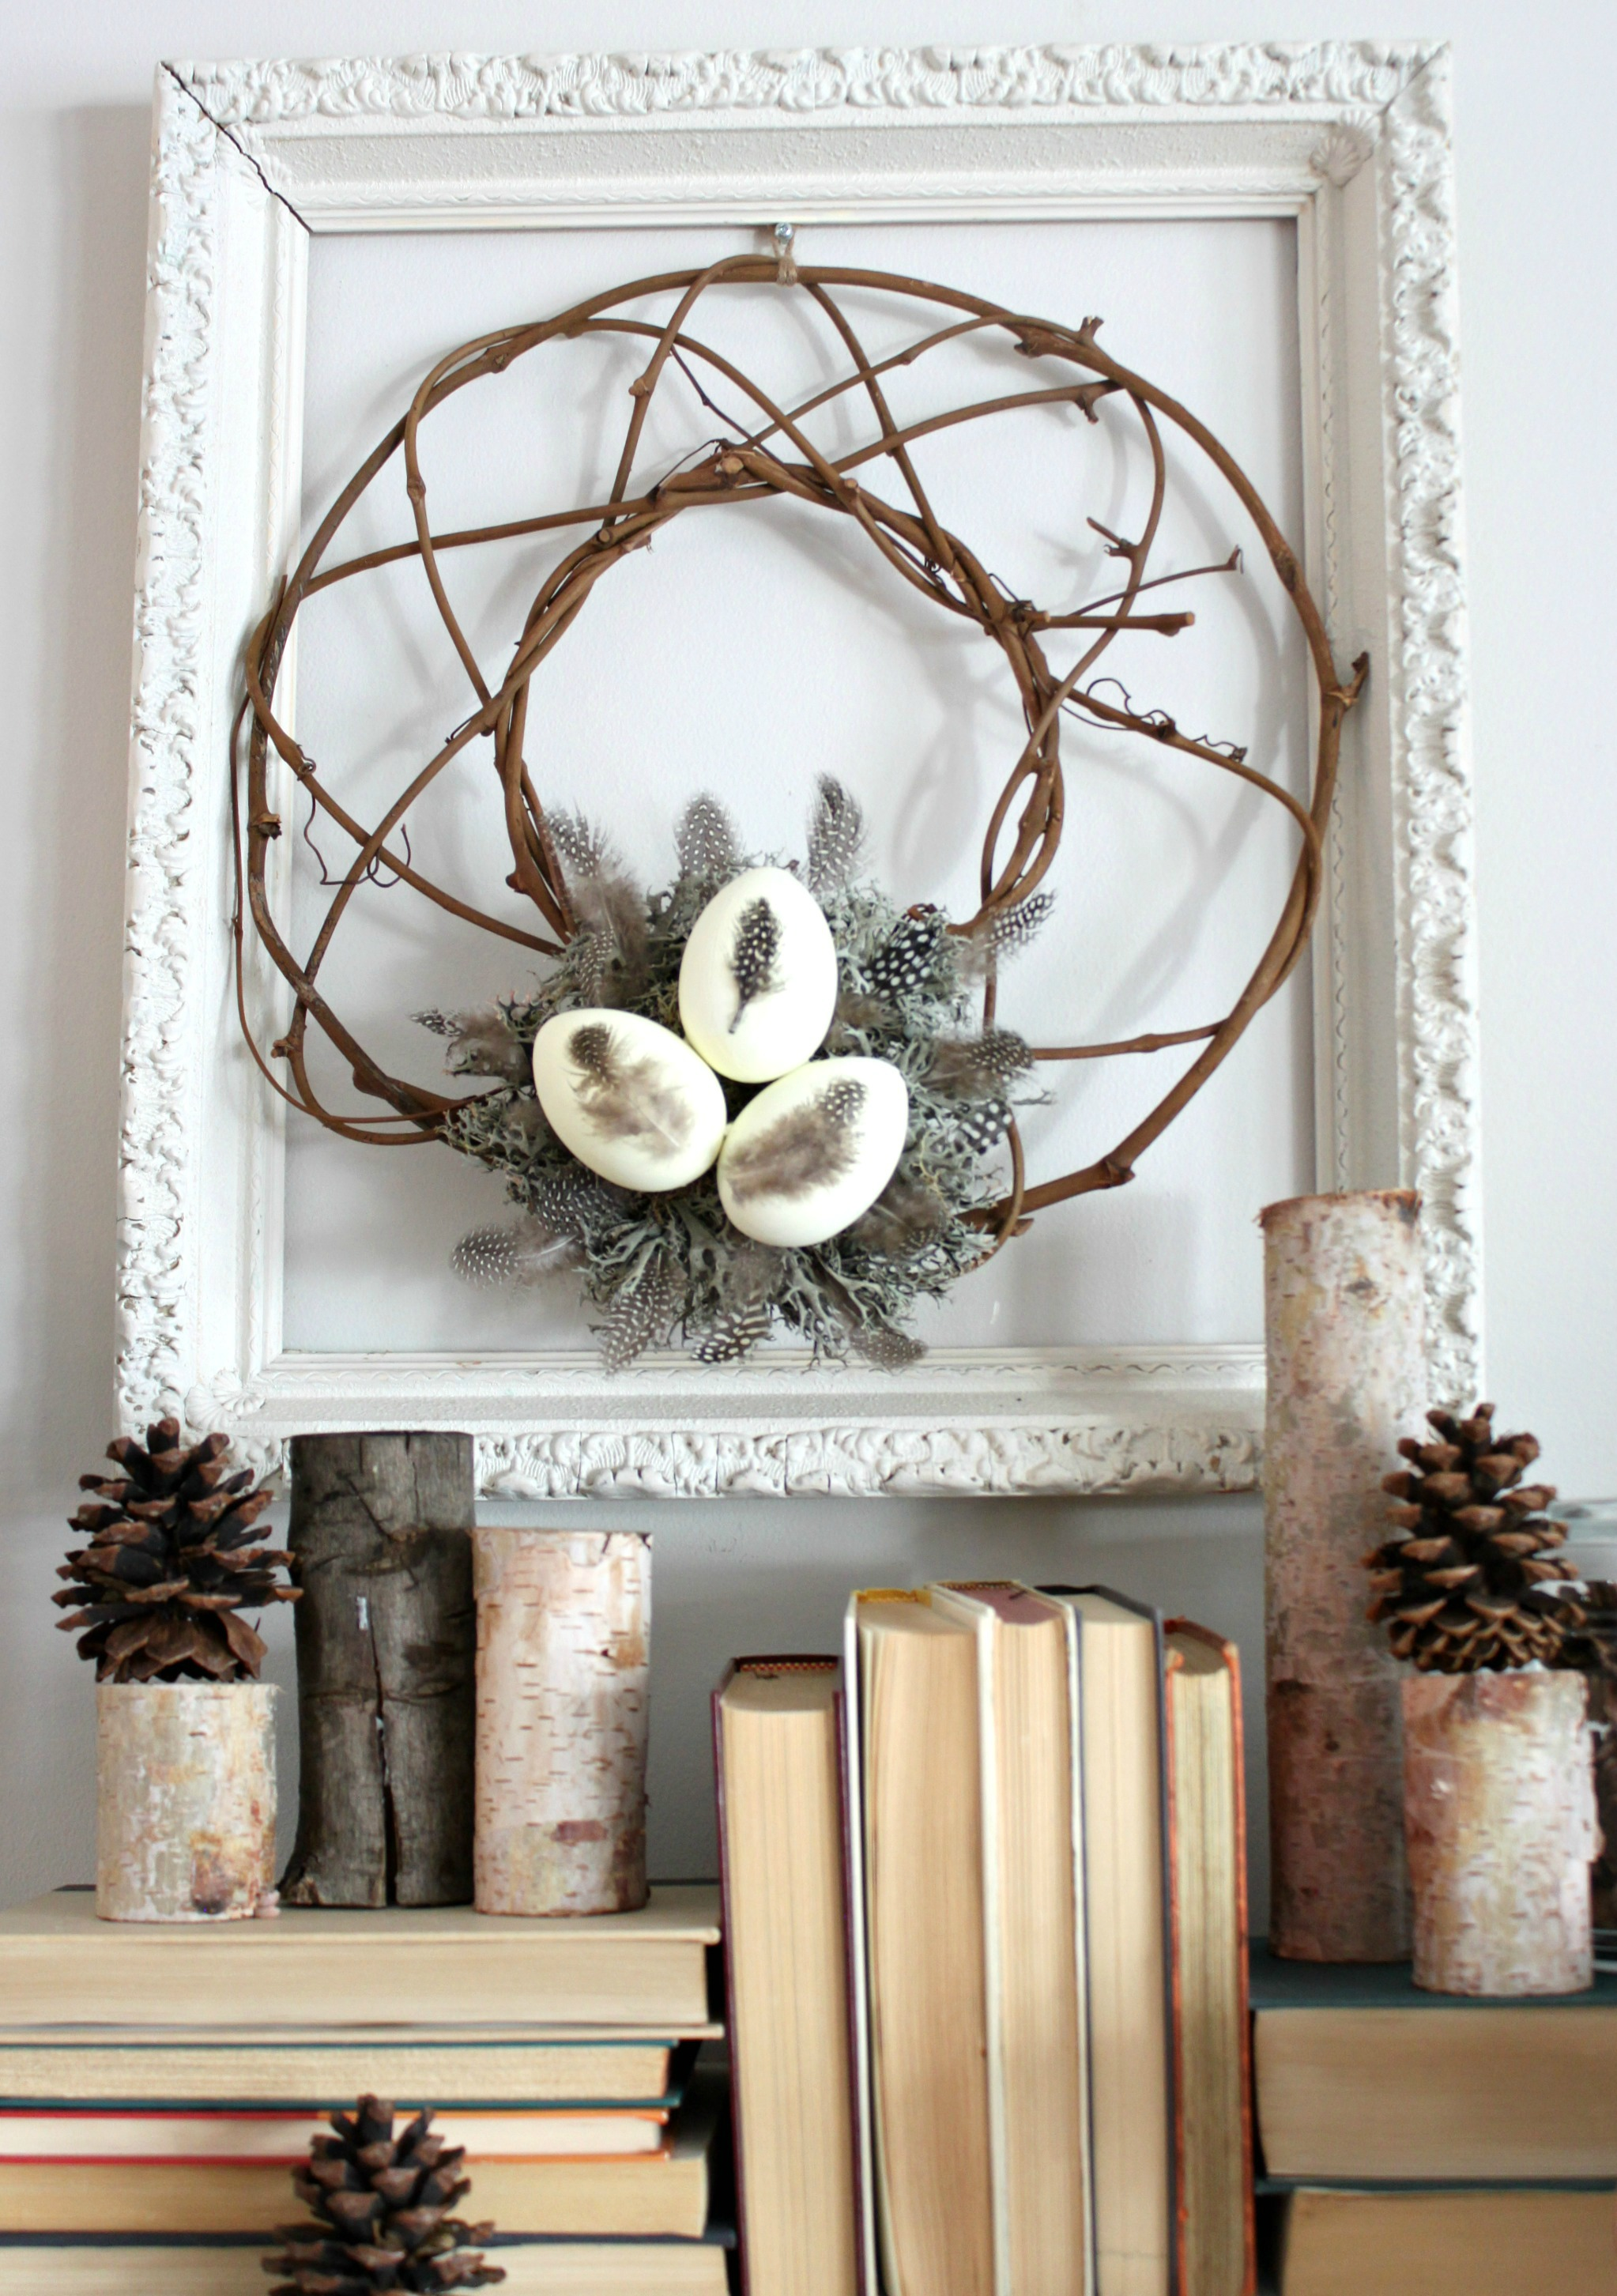 Winter Wreath. This easy DIY winter wreath was made using items from around the house.